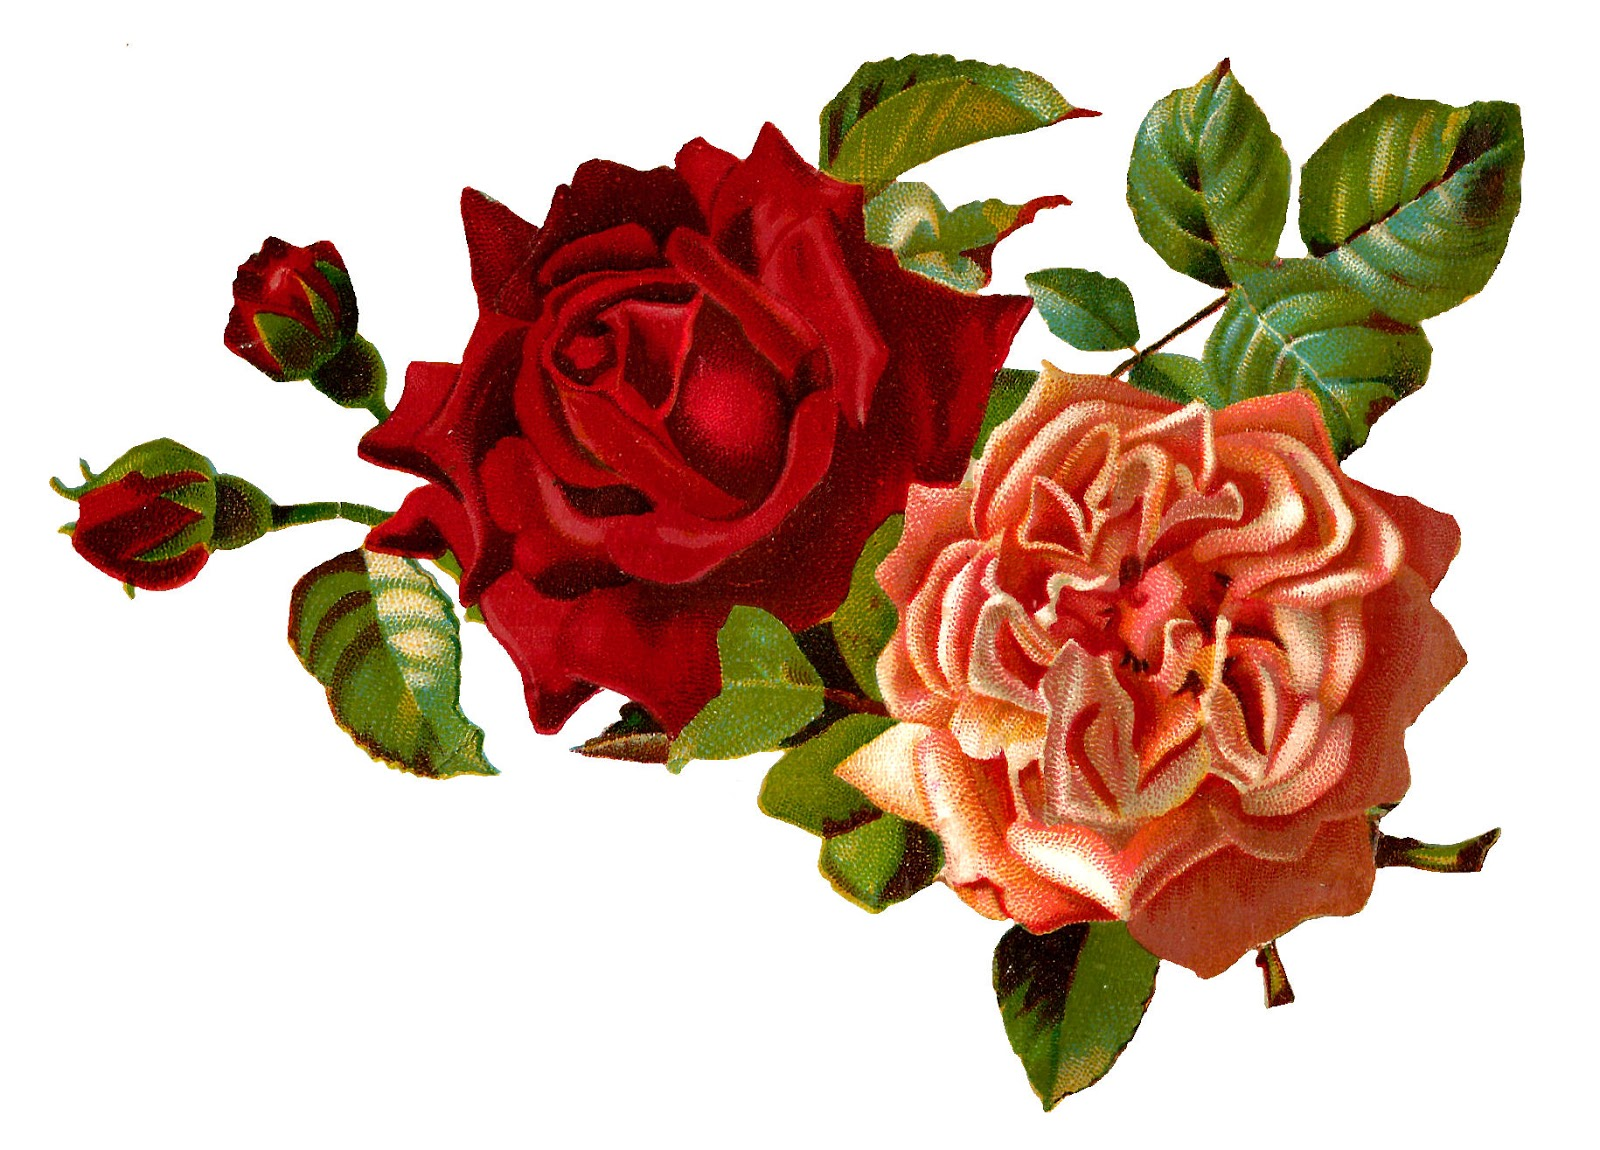 single flower in vase painting with Stock Rose Flowers Digital Images on Recycling Awareness Posters C aign moreover Flower preservation furthermore Pink Large Rose and  Rose Bud   Clipart in addition Diy Garden Pots Decoration Ideas moreover 5962615kd26da7b4.